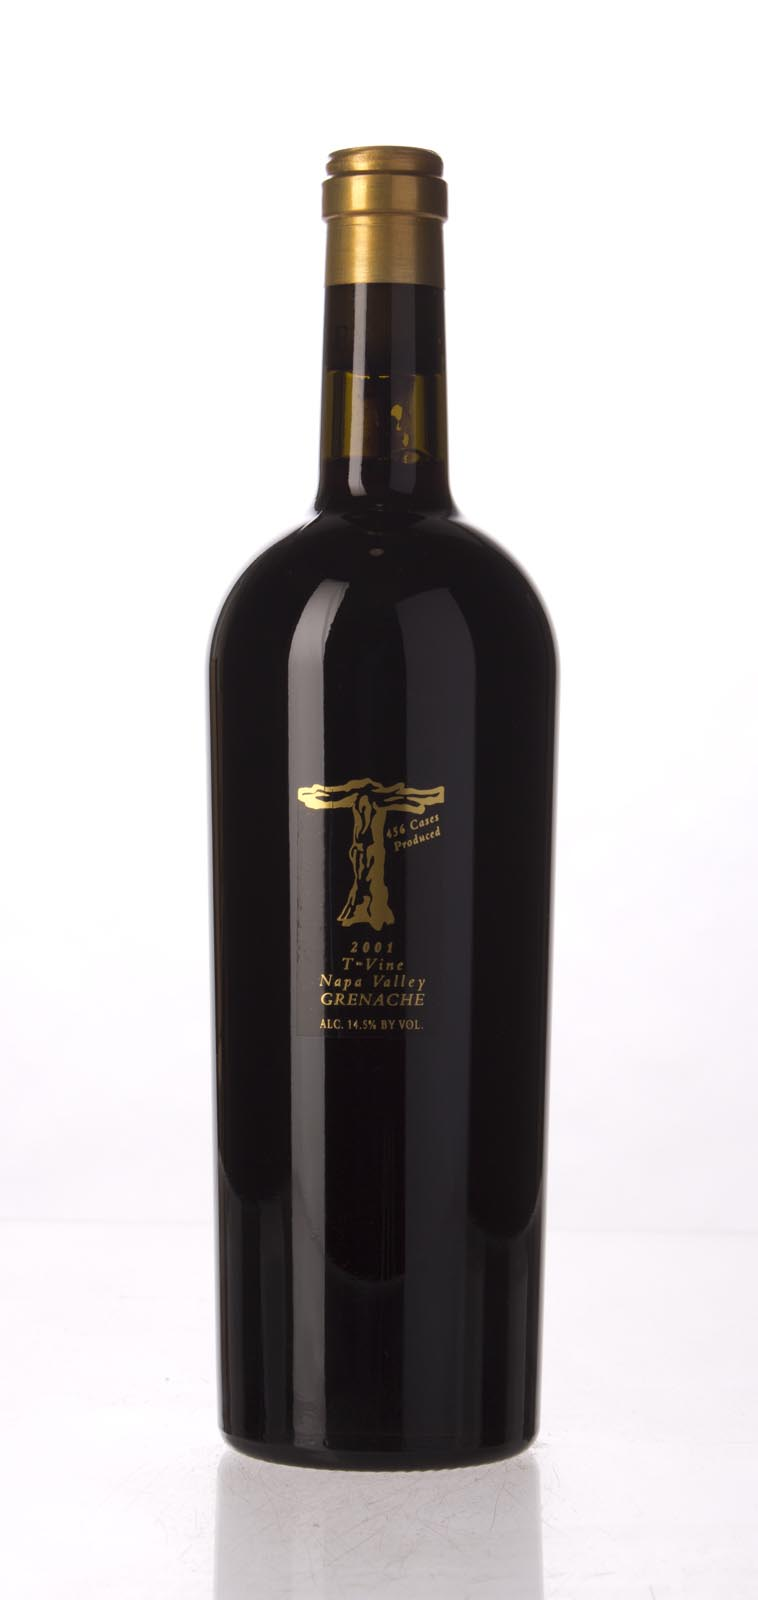 T Vine Grenache 2001, 750mL () from The BPW - Merchants of rare and fine wines.